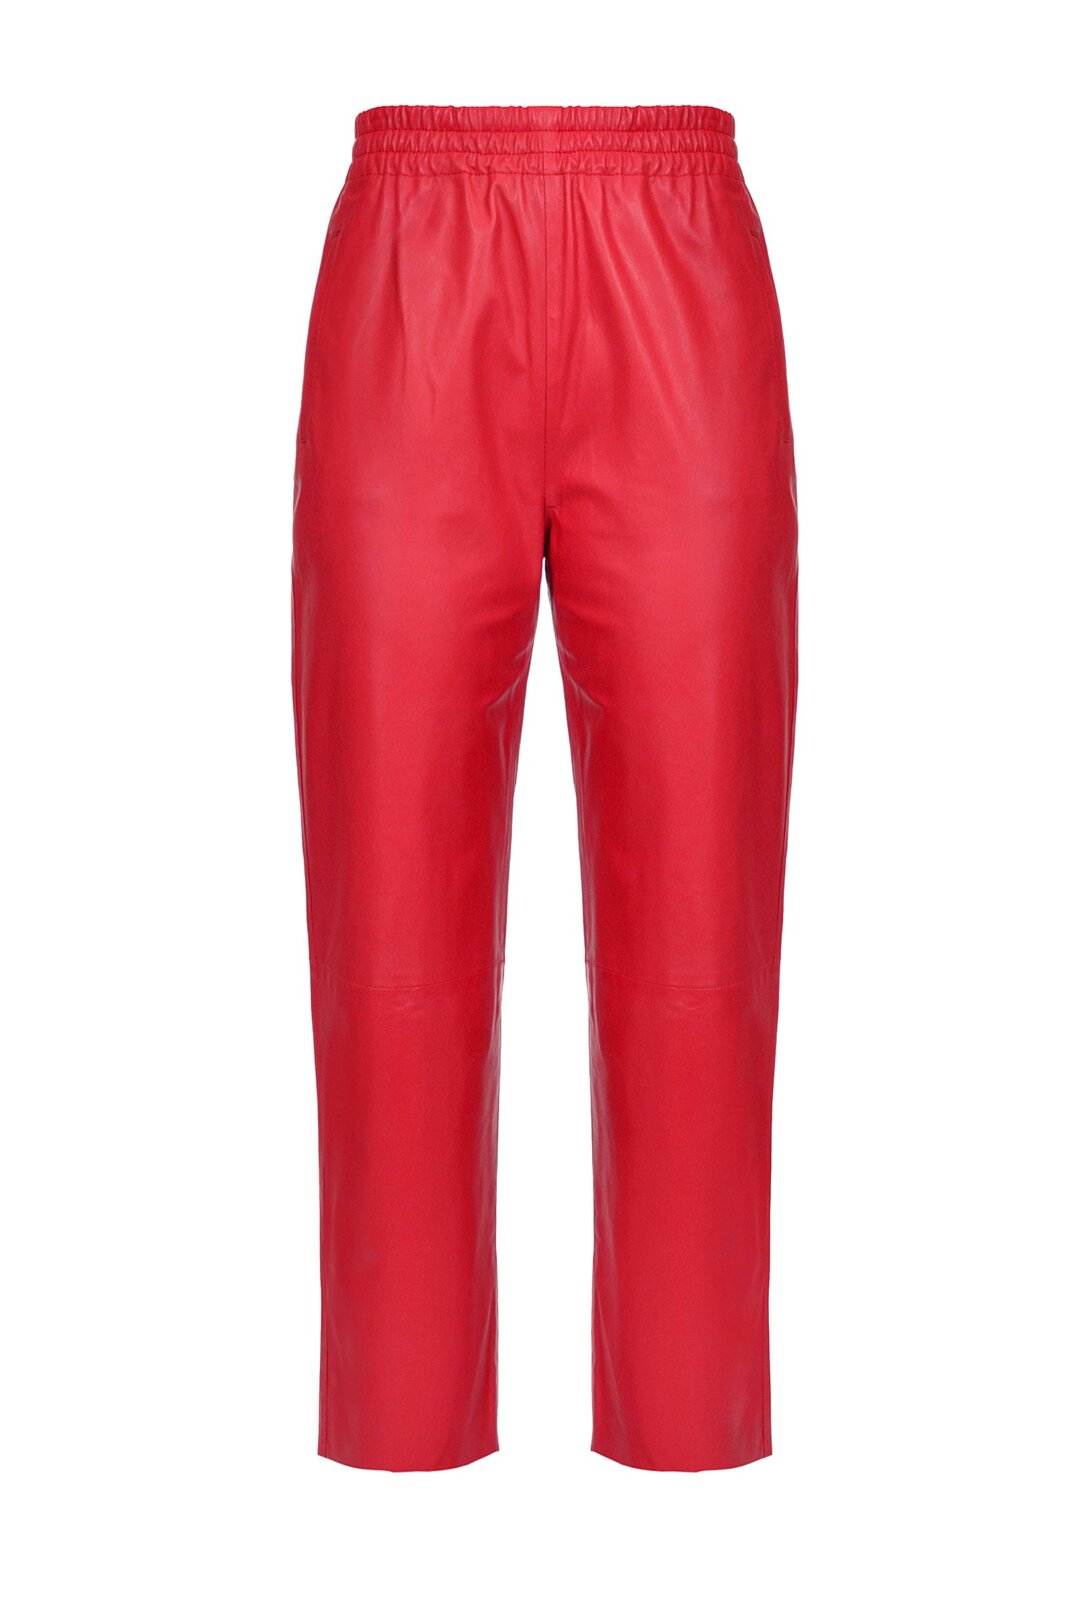 Pantaloni In Pelle Ultralight - Pinko